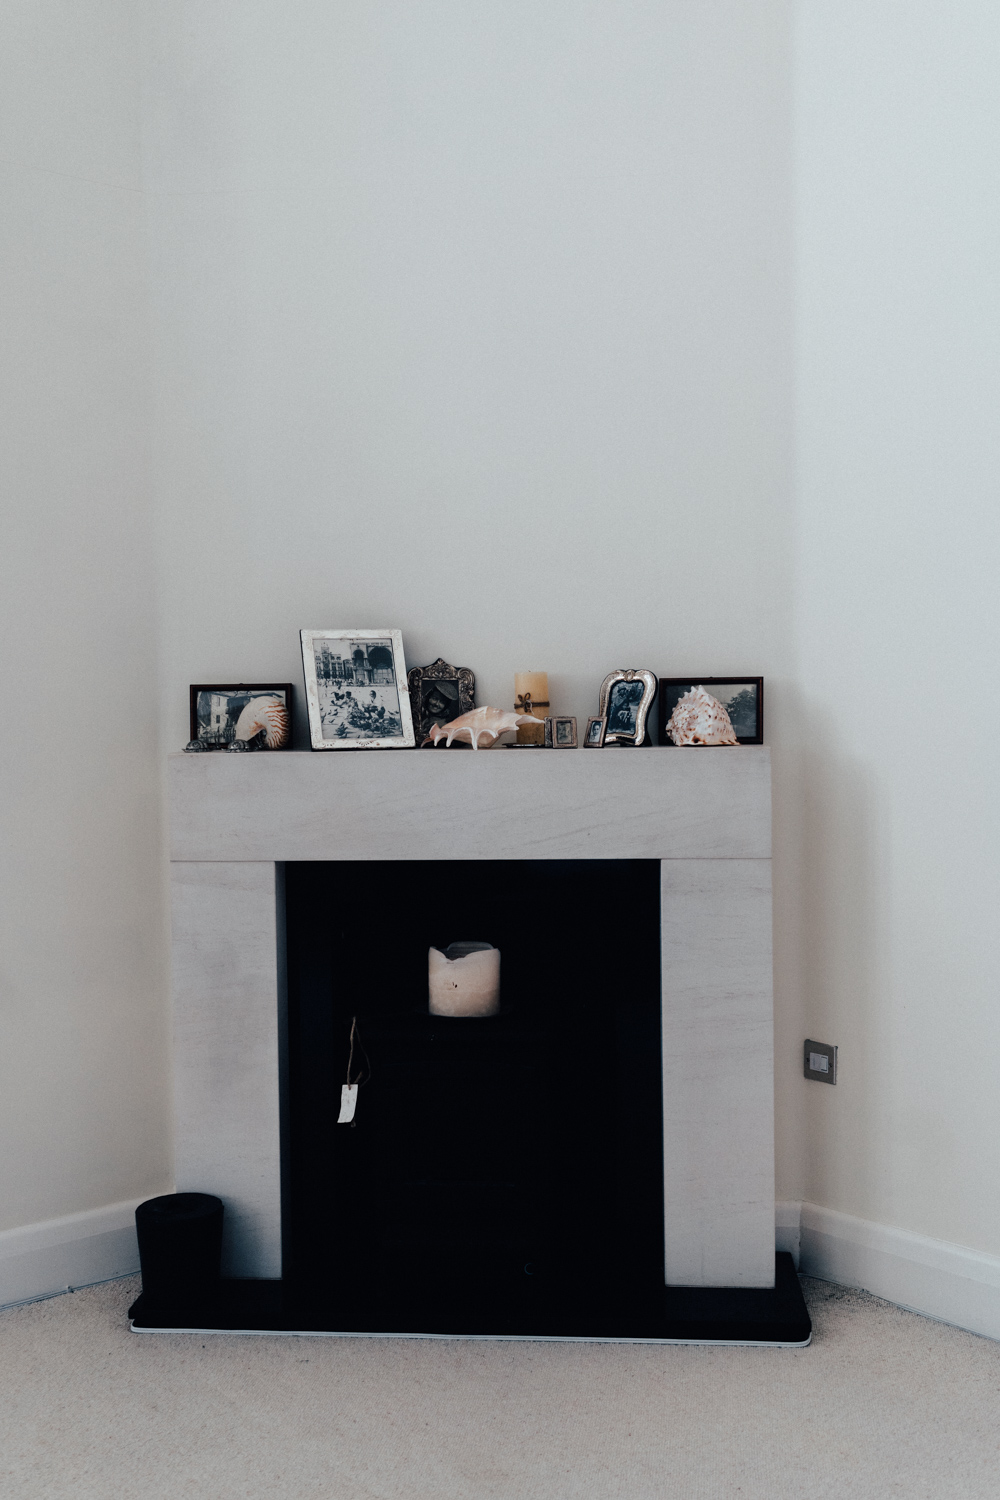 A mantelpiece full of family photos and precious objects, an all time favourite.